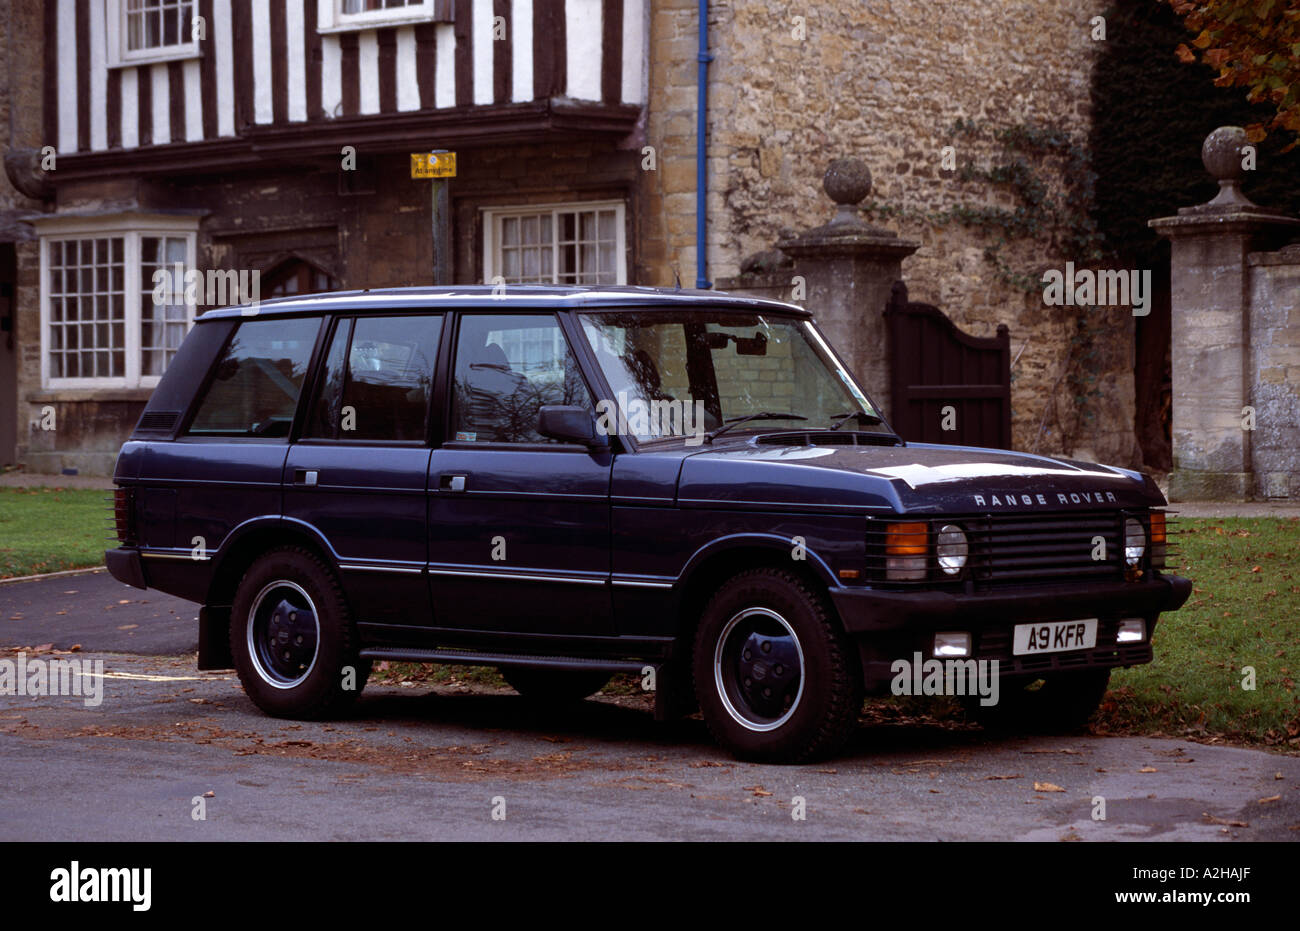 High Country Motors >> Land Rover Range Rover Vogue SE. Model years 1981 to 1996 Stock Photo: 6014126 - Alamy